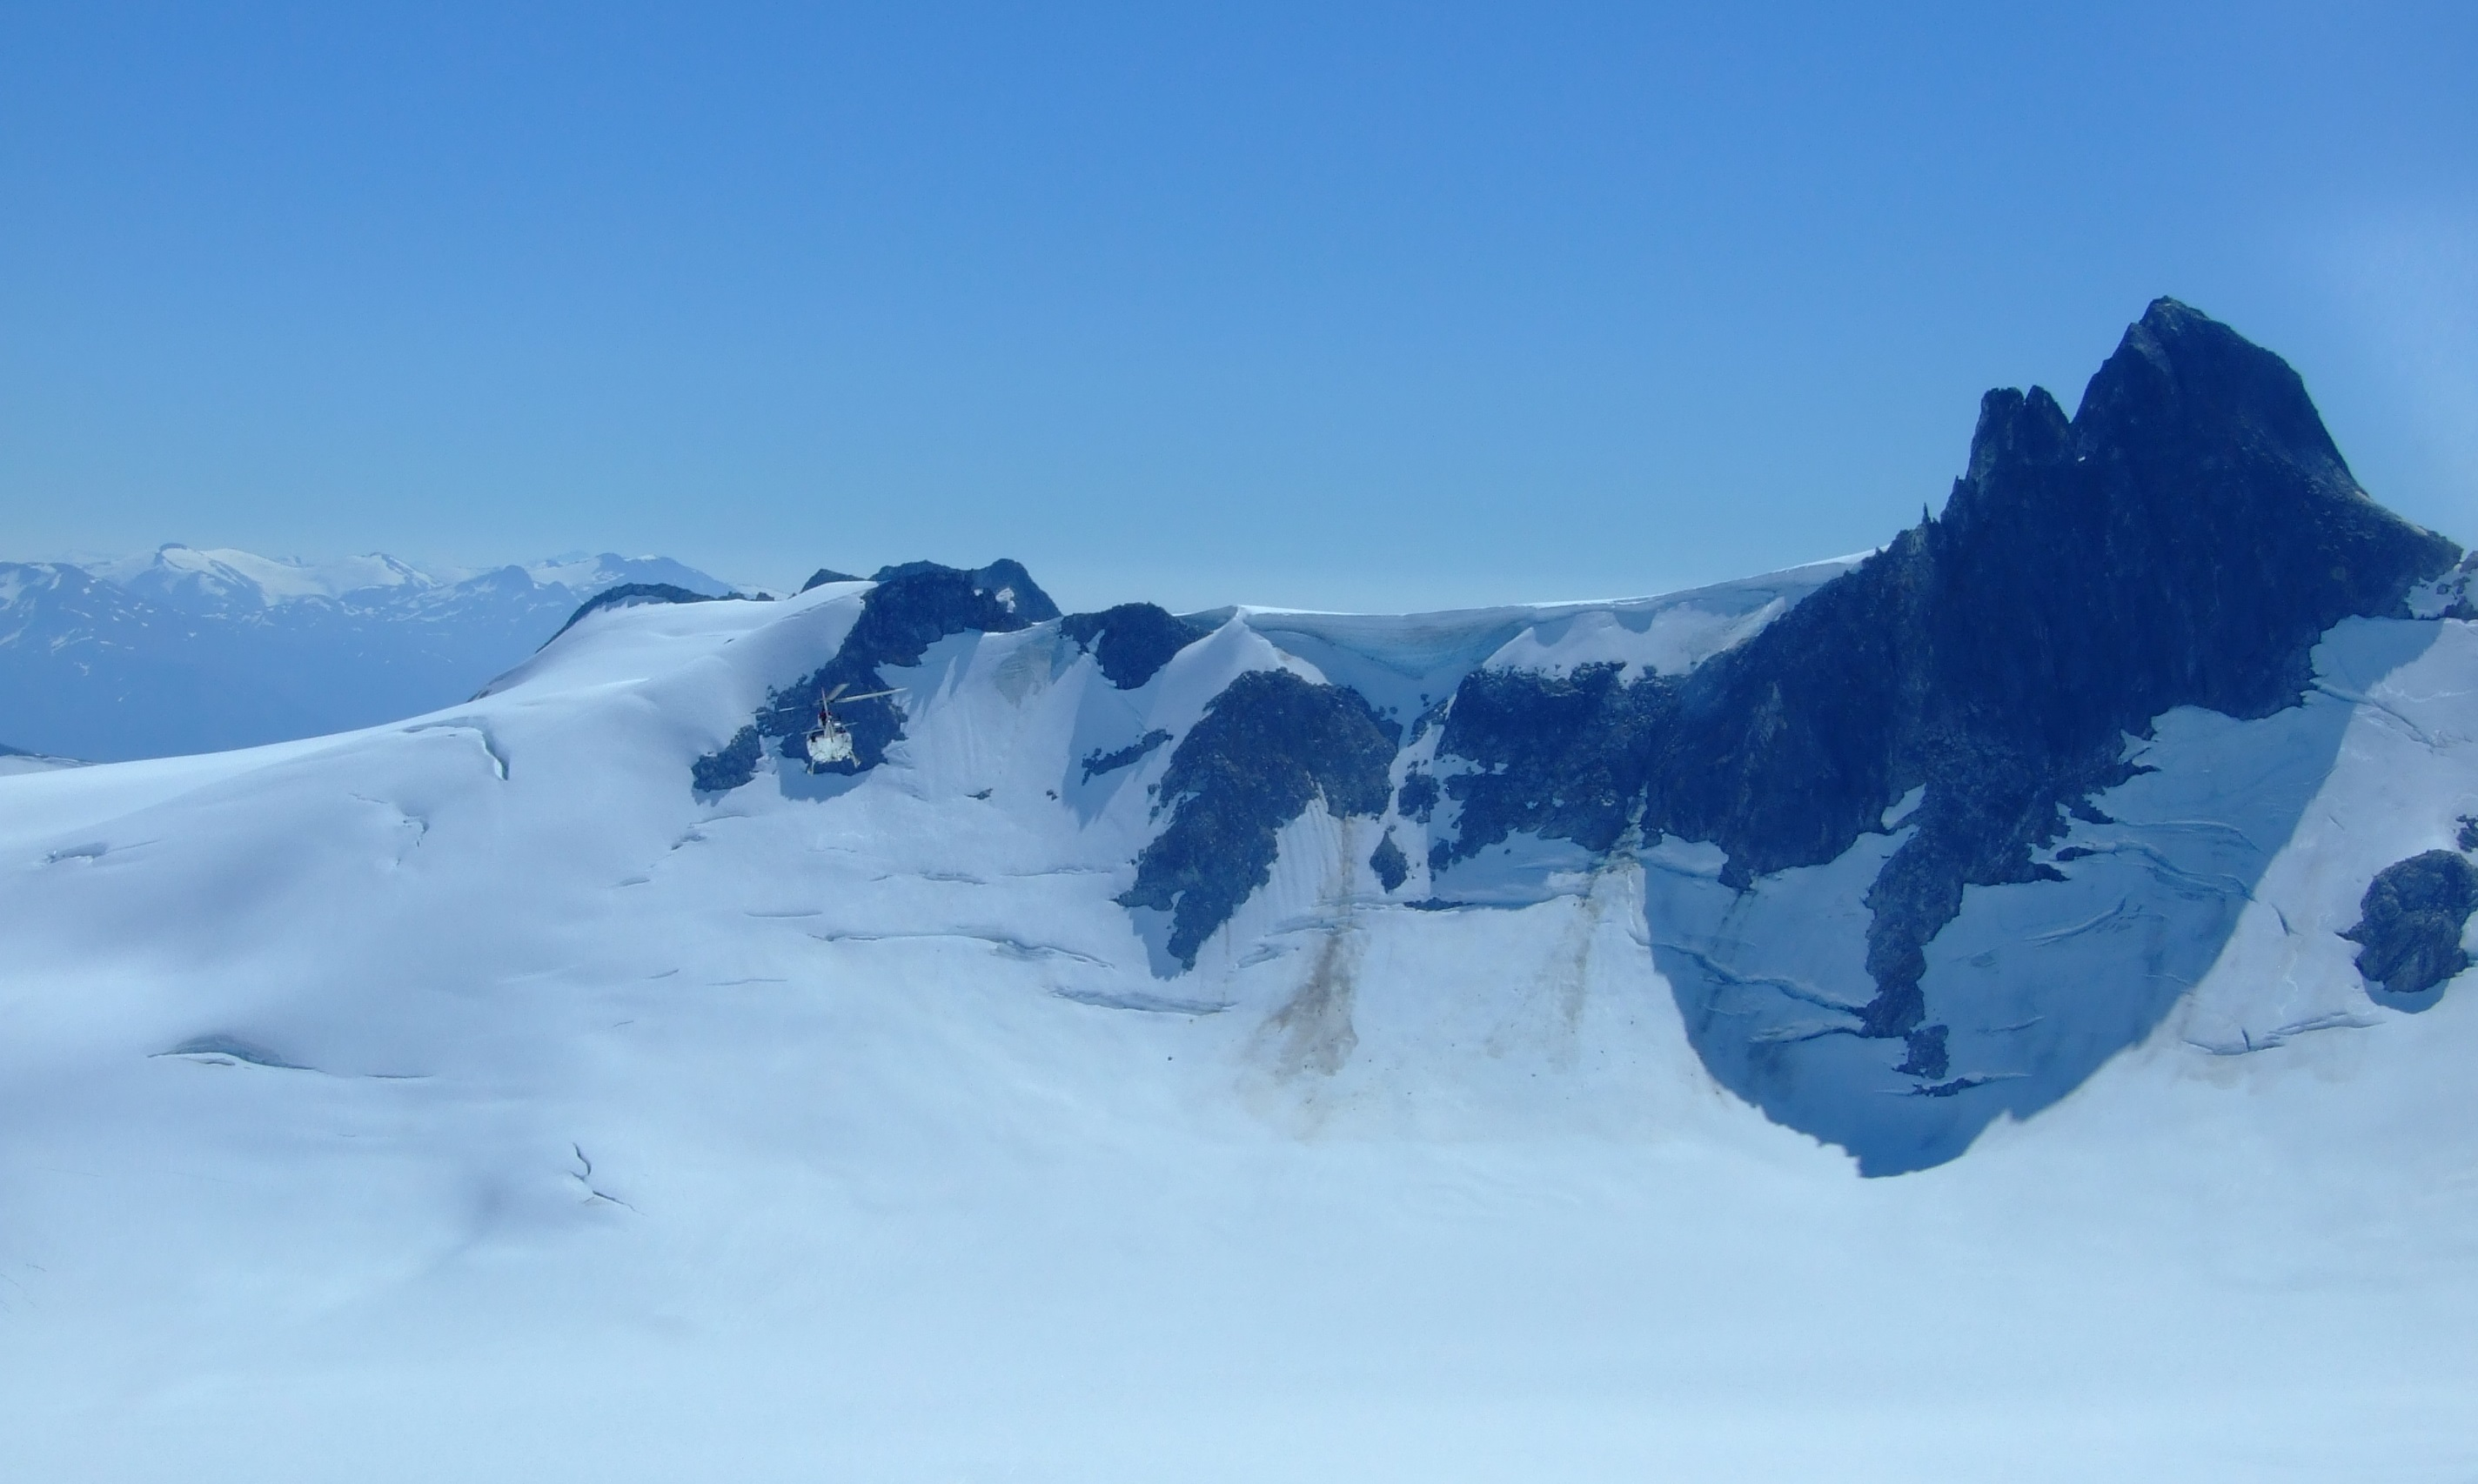 Passing by Split Thumb at the upper end of the Middle Branch Norris Glacier.